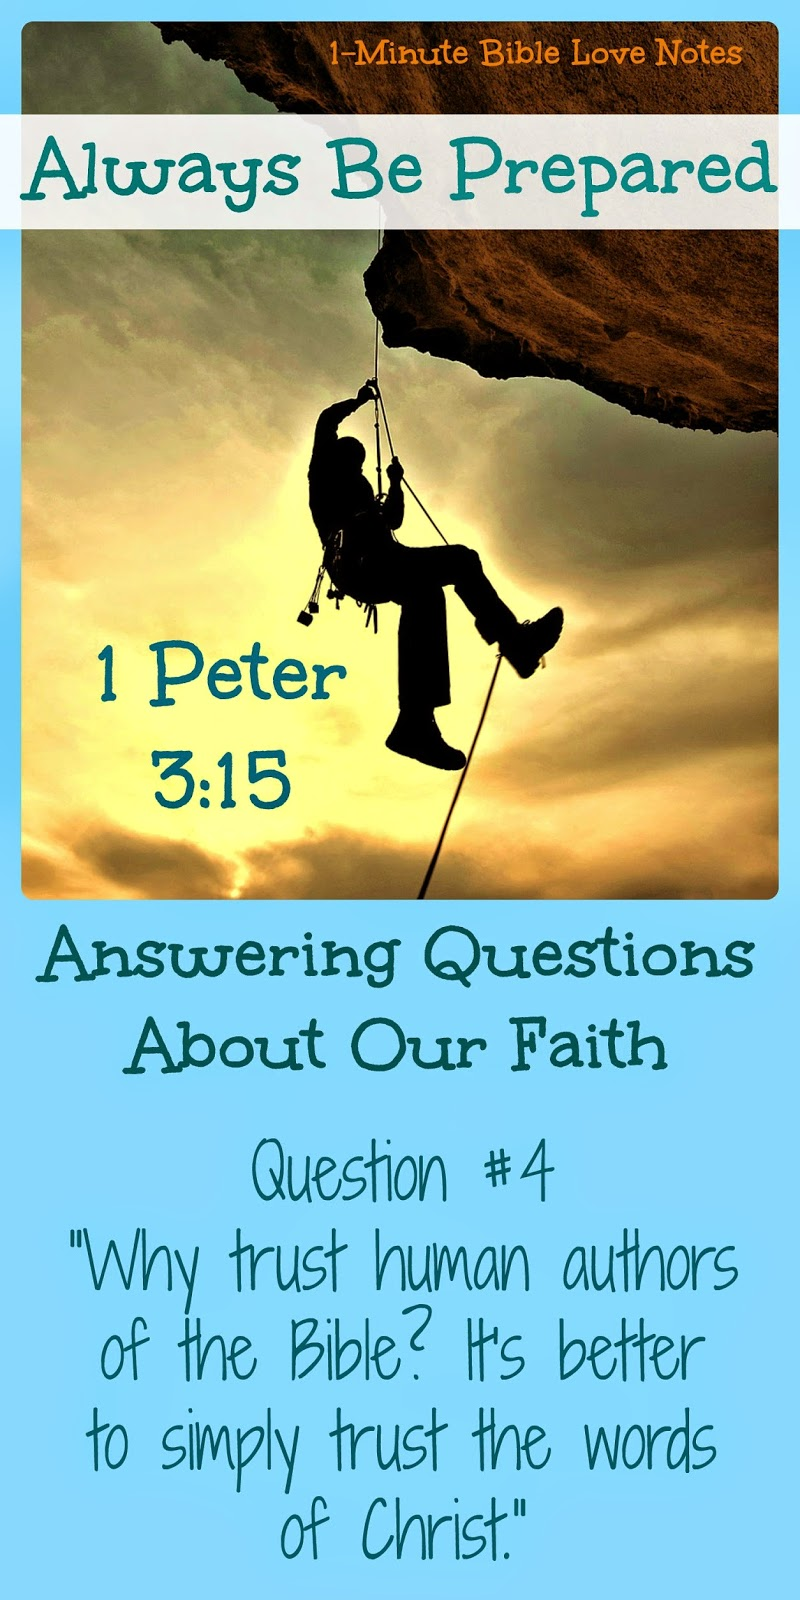 1 Peter 3:15, be prepared to answer about our faith, can you believe the words of Christ and not the rest of Scripture